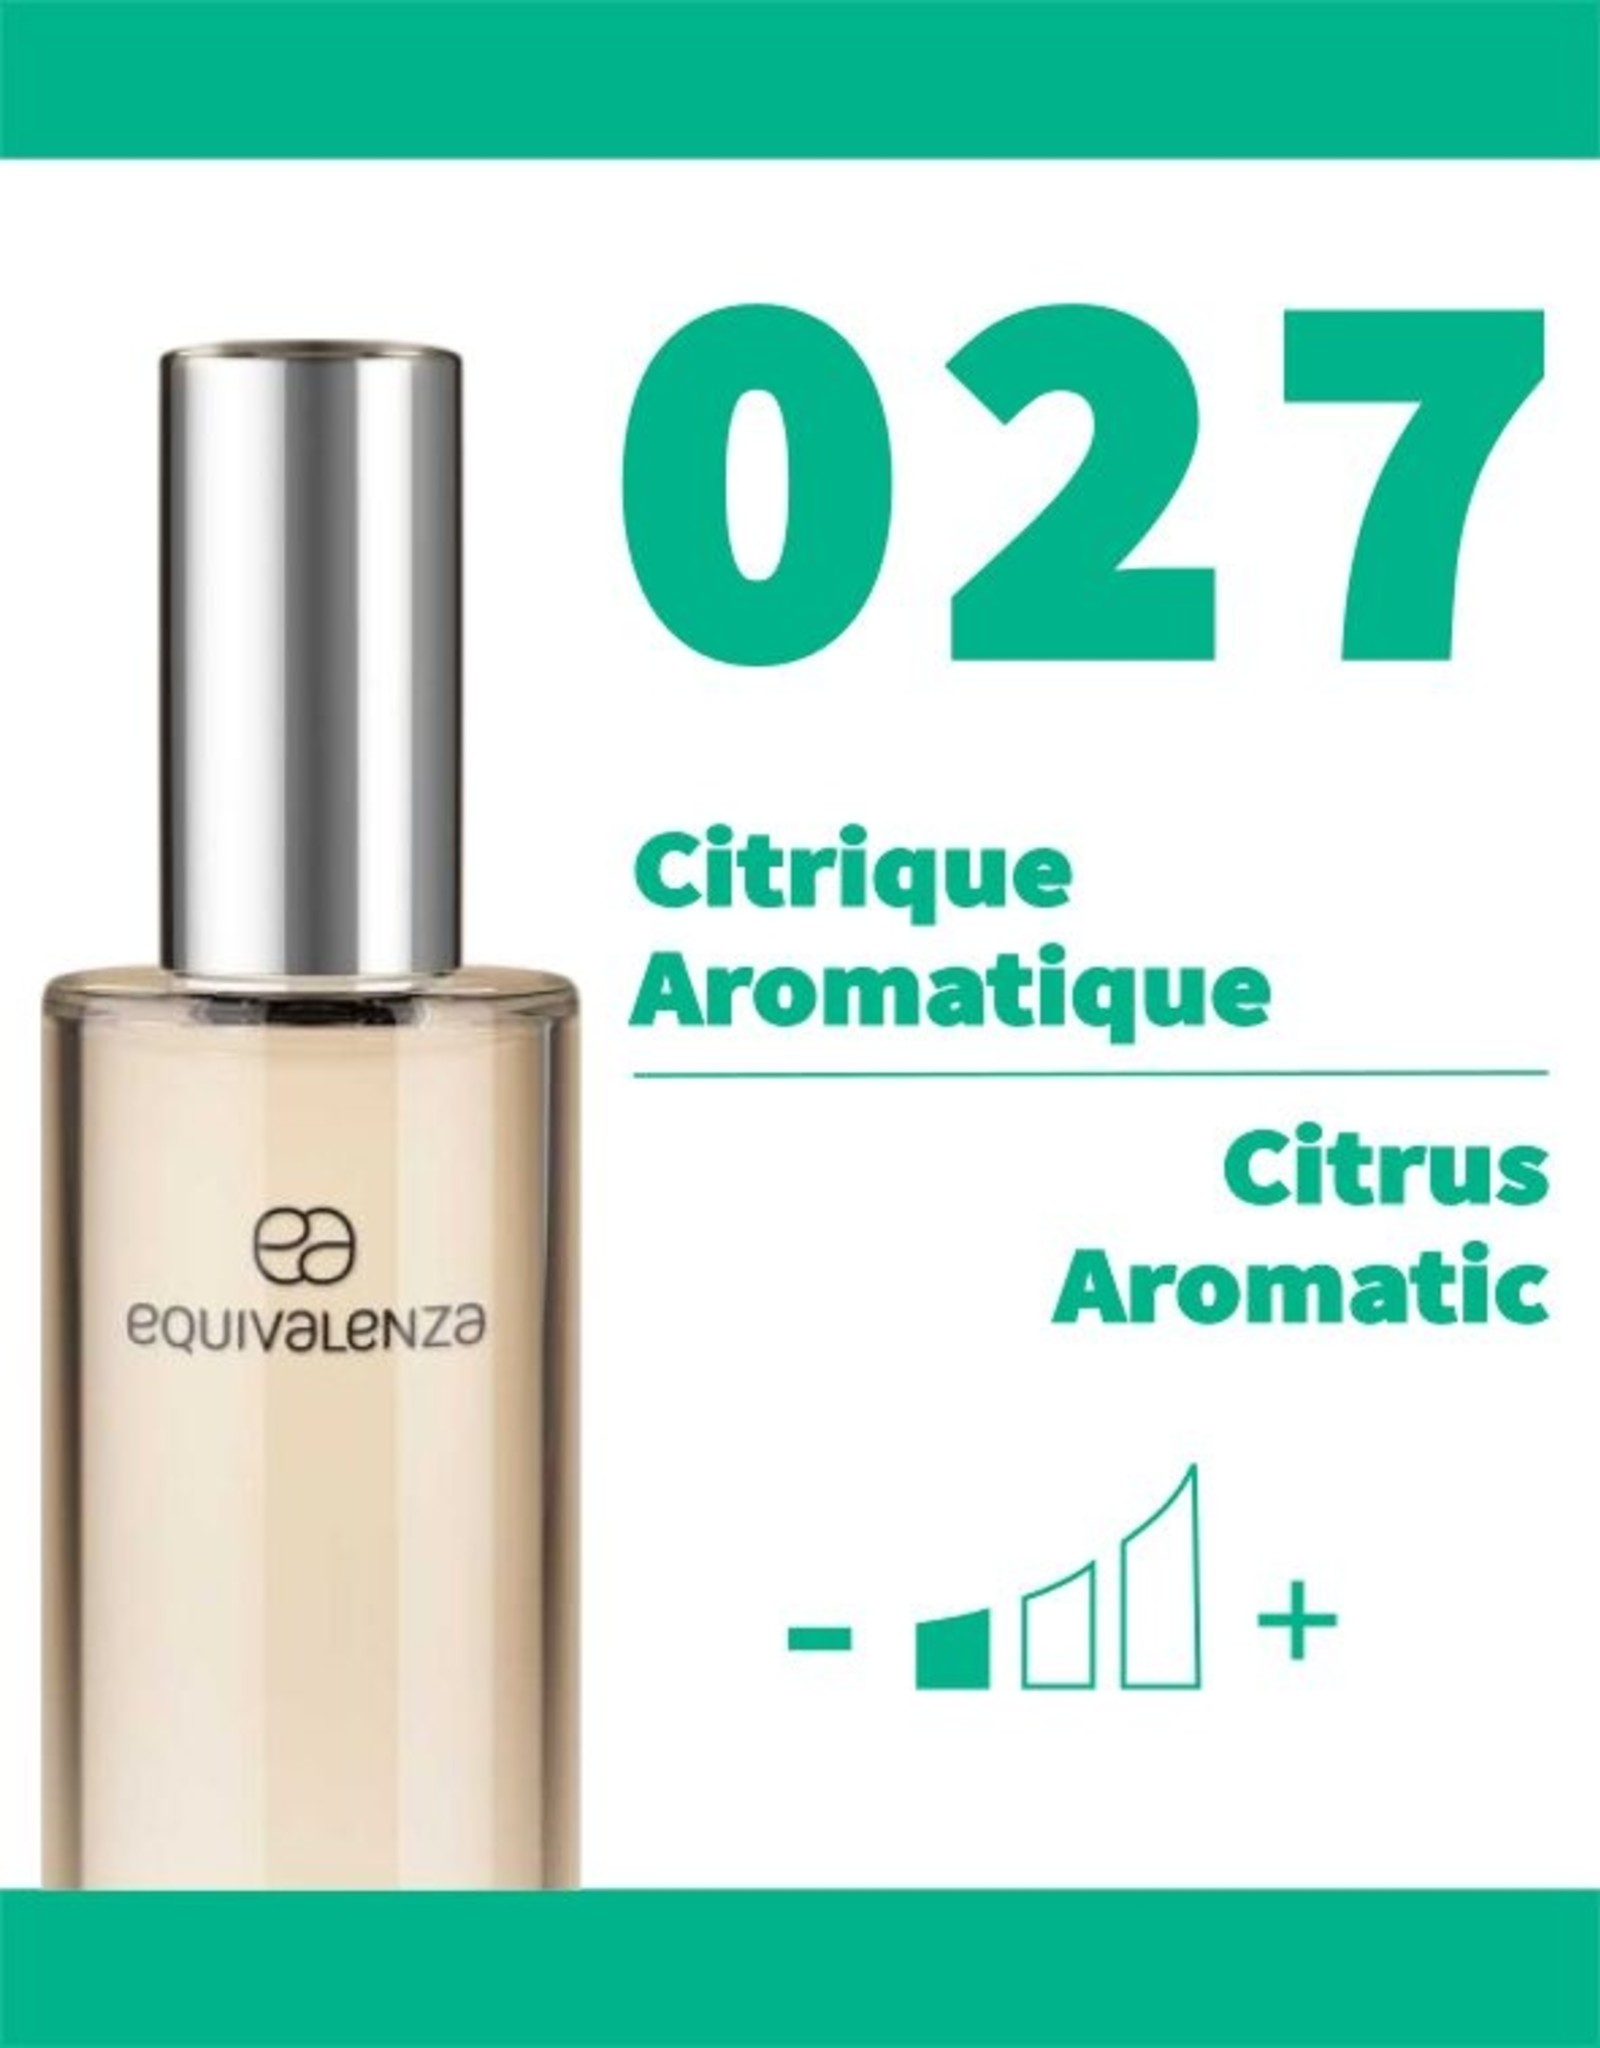 Equivalenza Citrus Aromatic 027